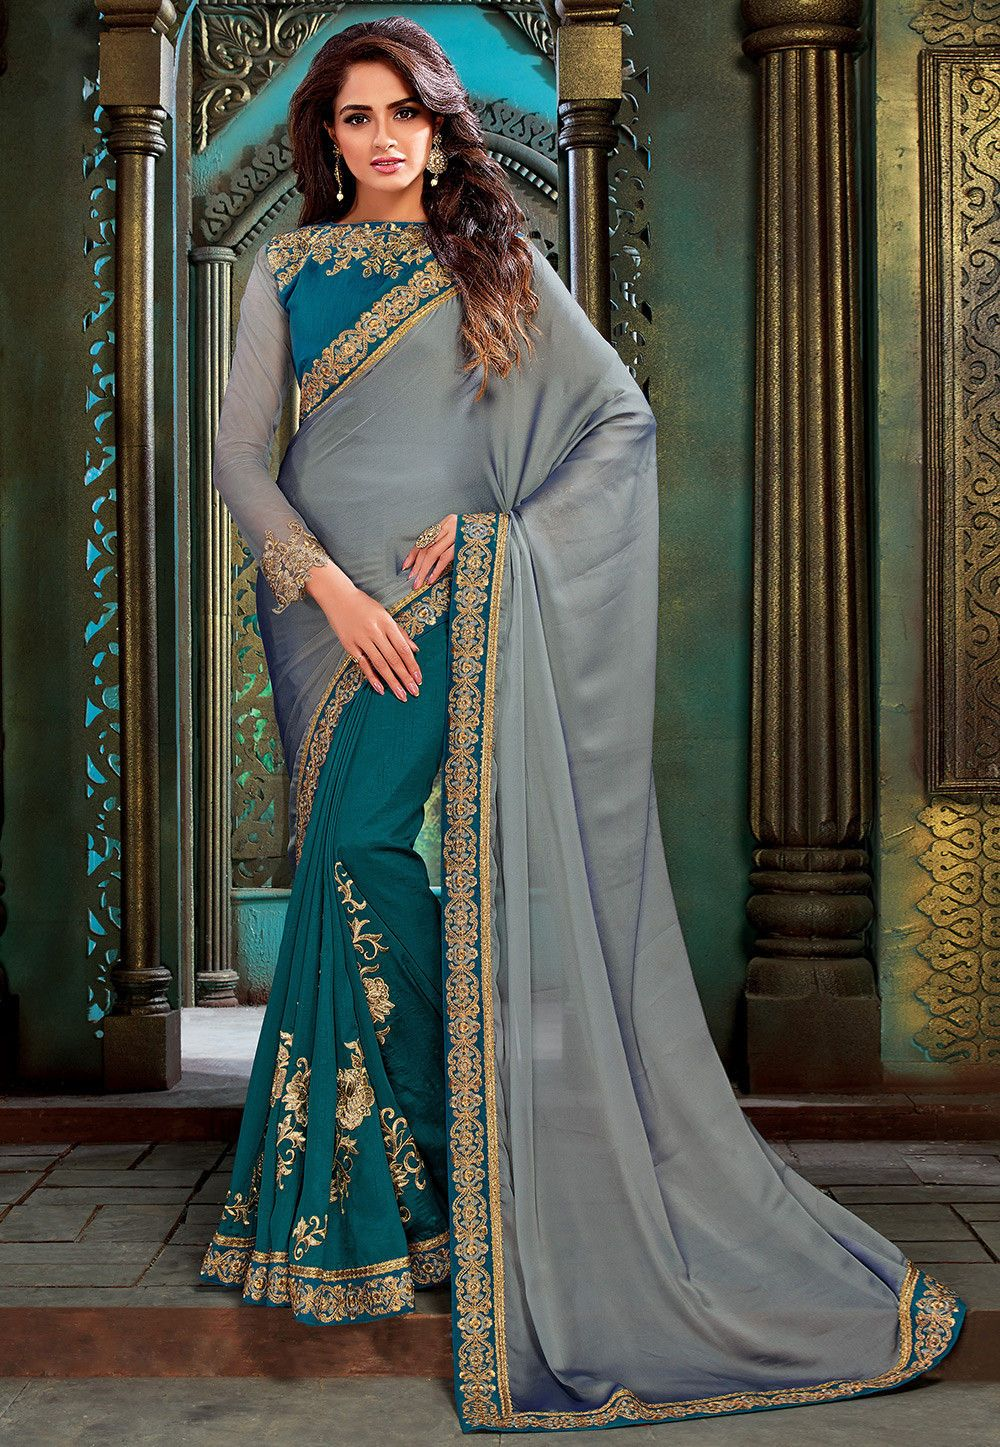 e4120f6bcc Buy online Half N Half Georgette Saree in Grey and Teal Blue now, Item  code: SYC7167, Color: Blue, Grey, Occasion: Wedding, Festive, Fabric:  Georgette, ...